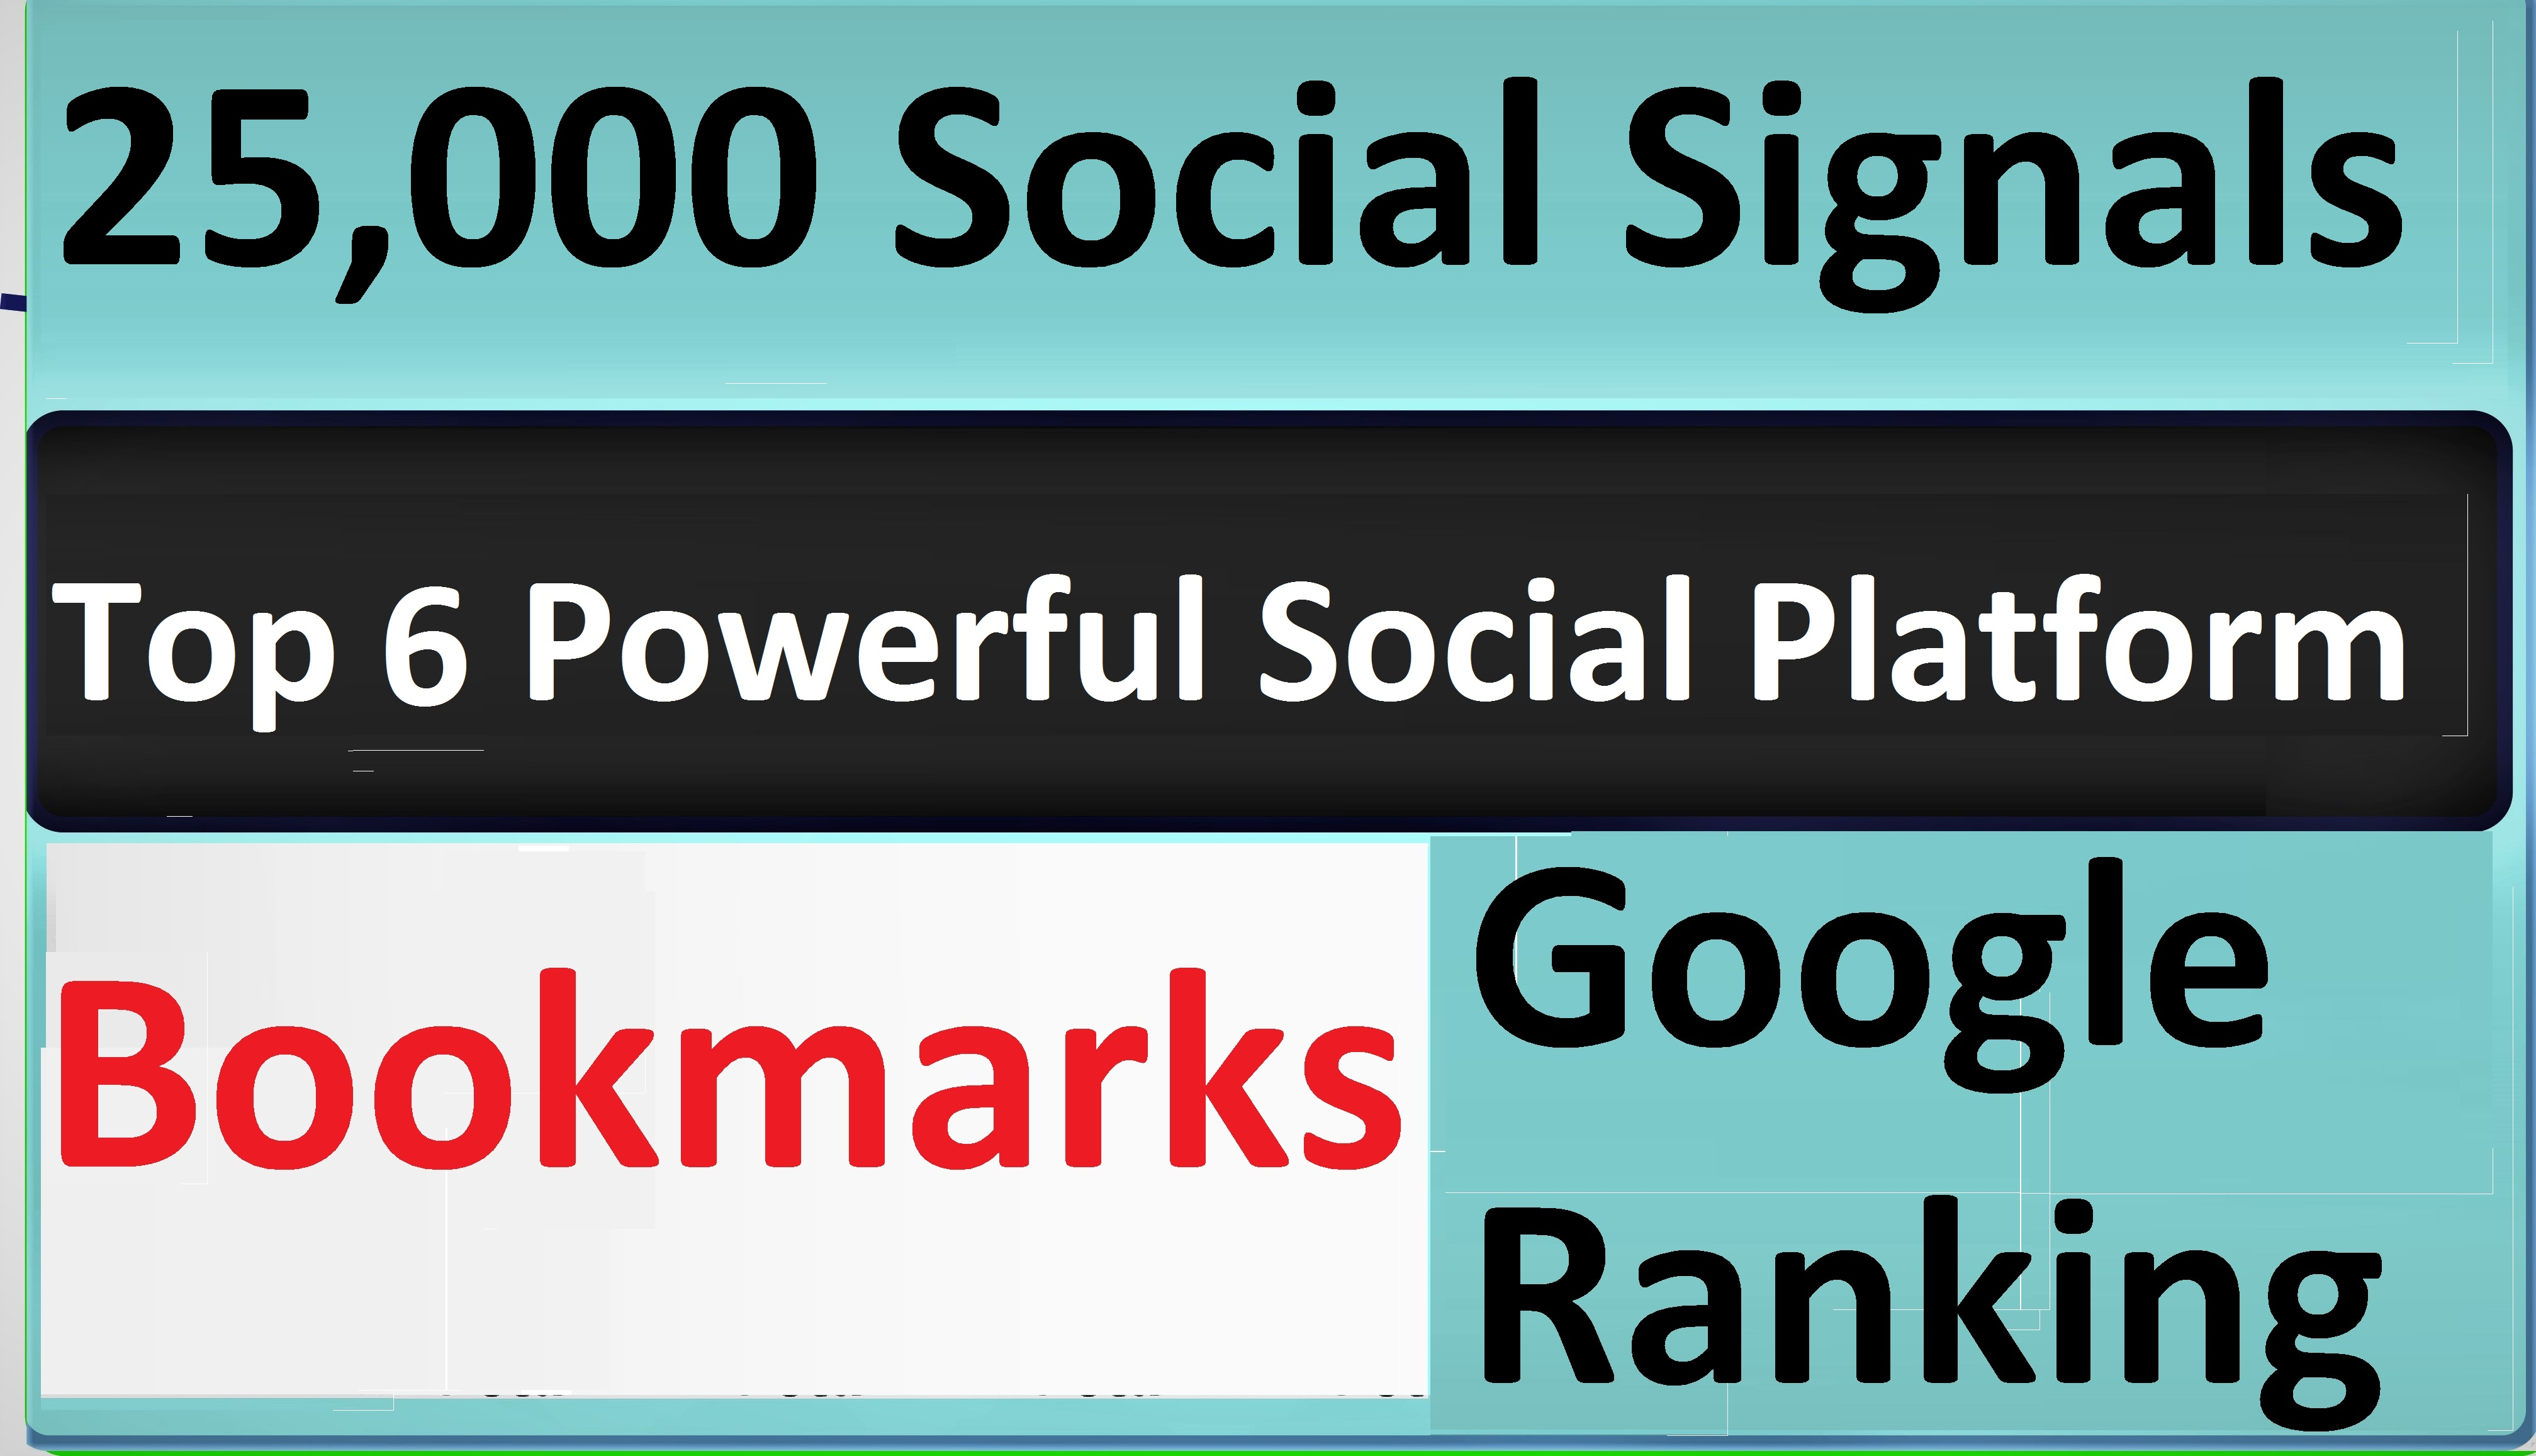 Give Top 6 Powerful Social Platform 25,000 PR9 SEO Social Signals Share Bookmarks Important Google